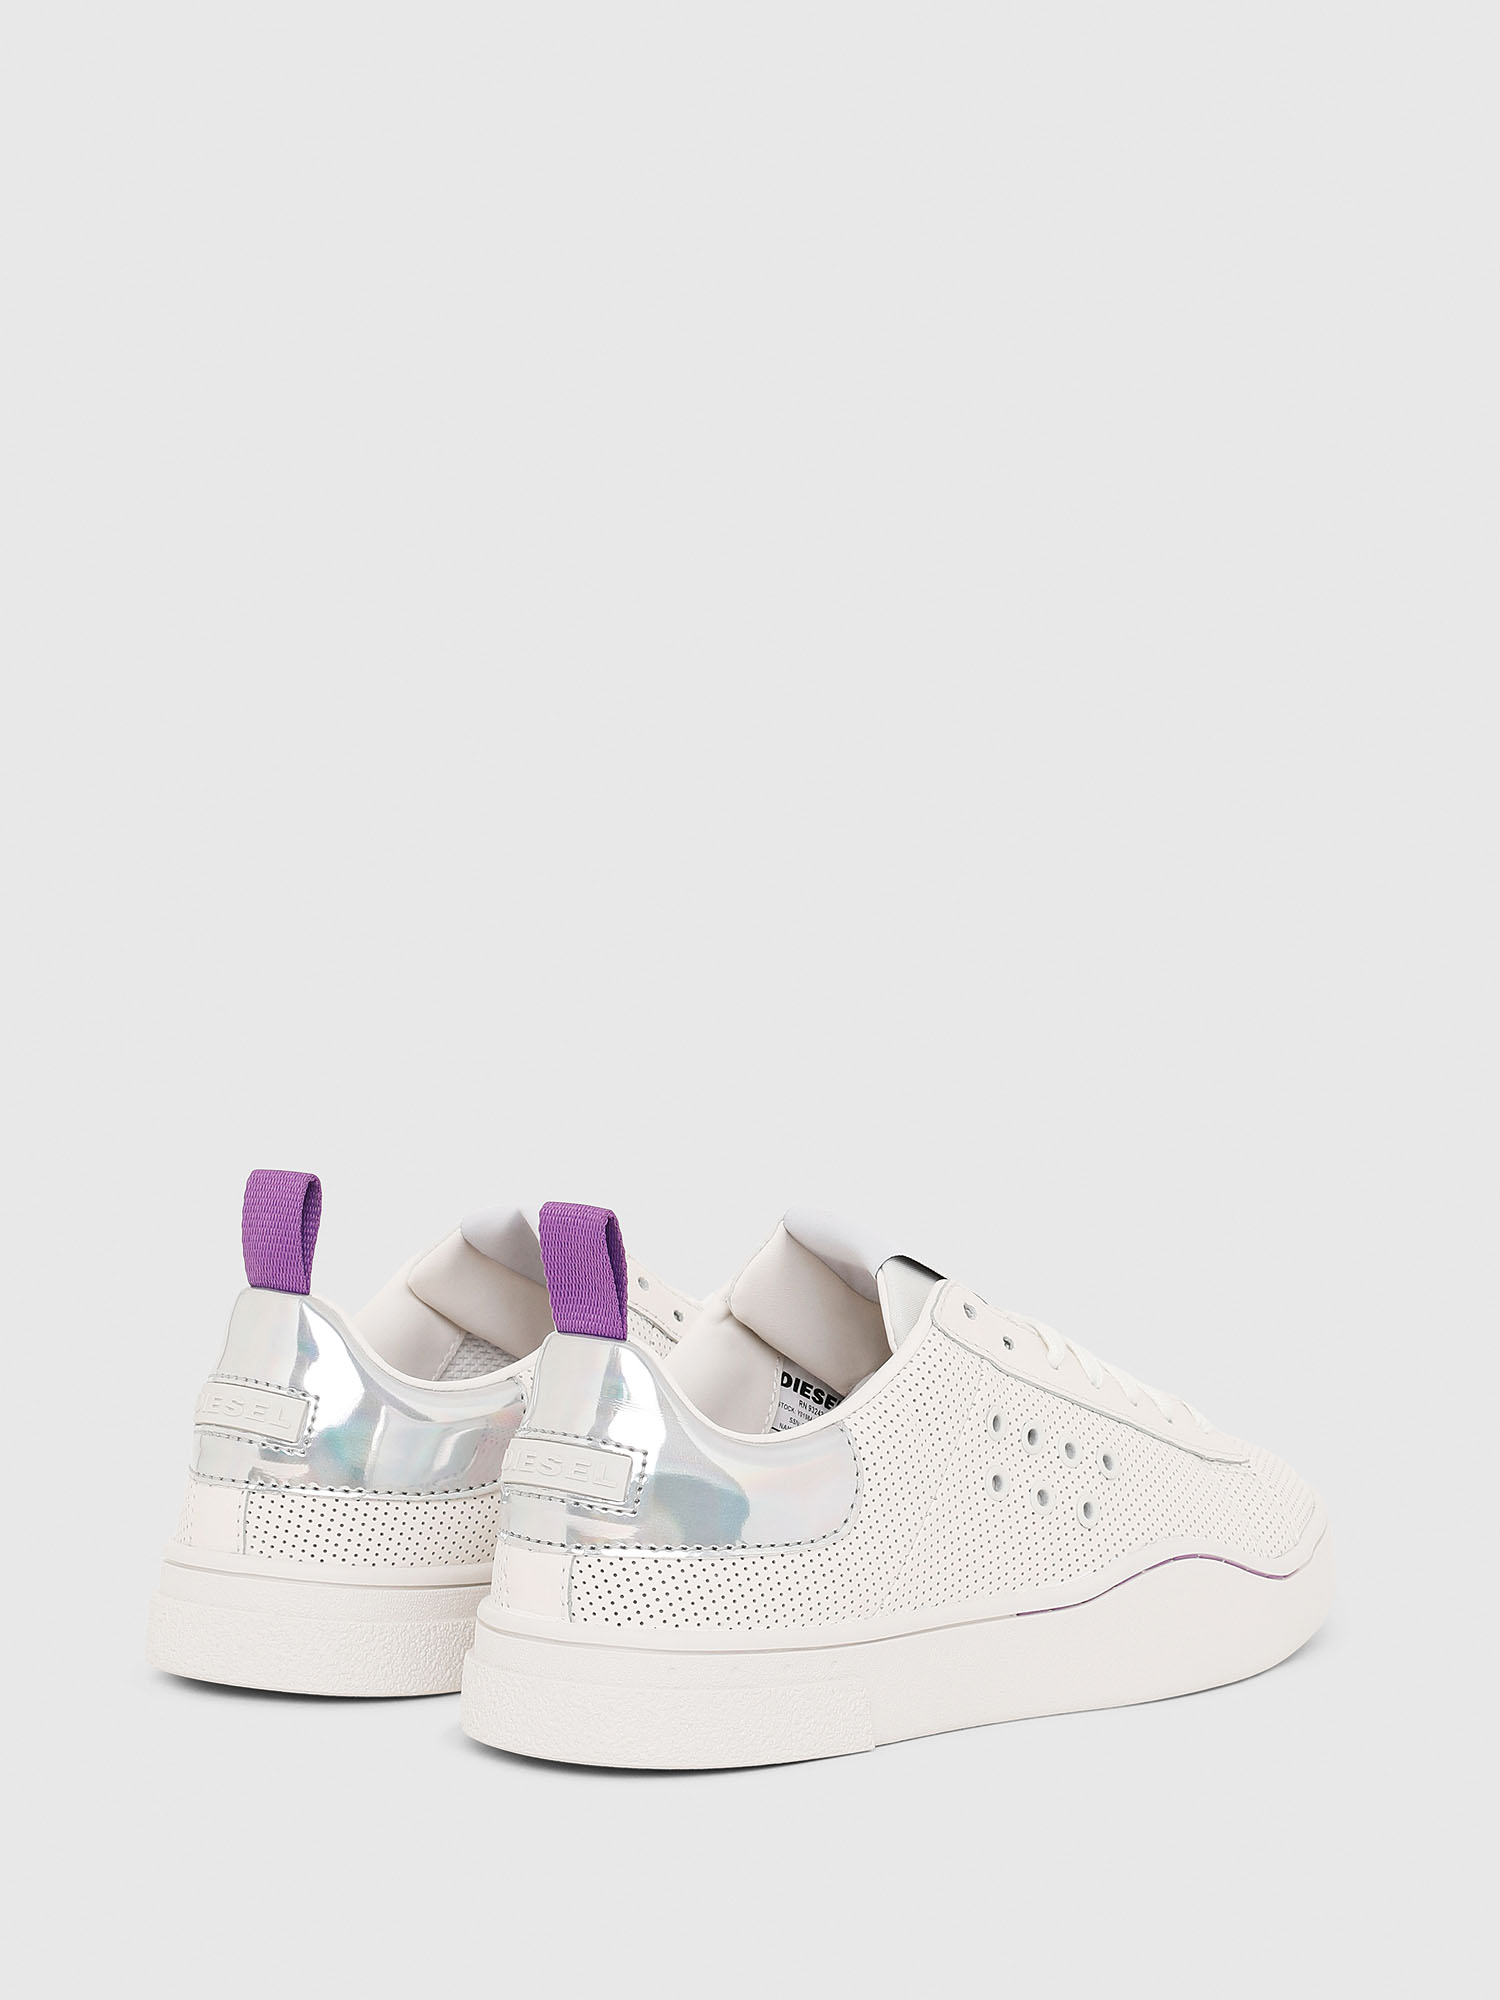 Diesel - S-CLEVER LC W,  - Sneakers - Image 3